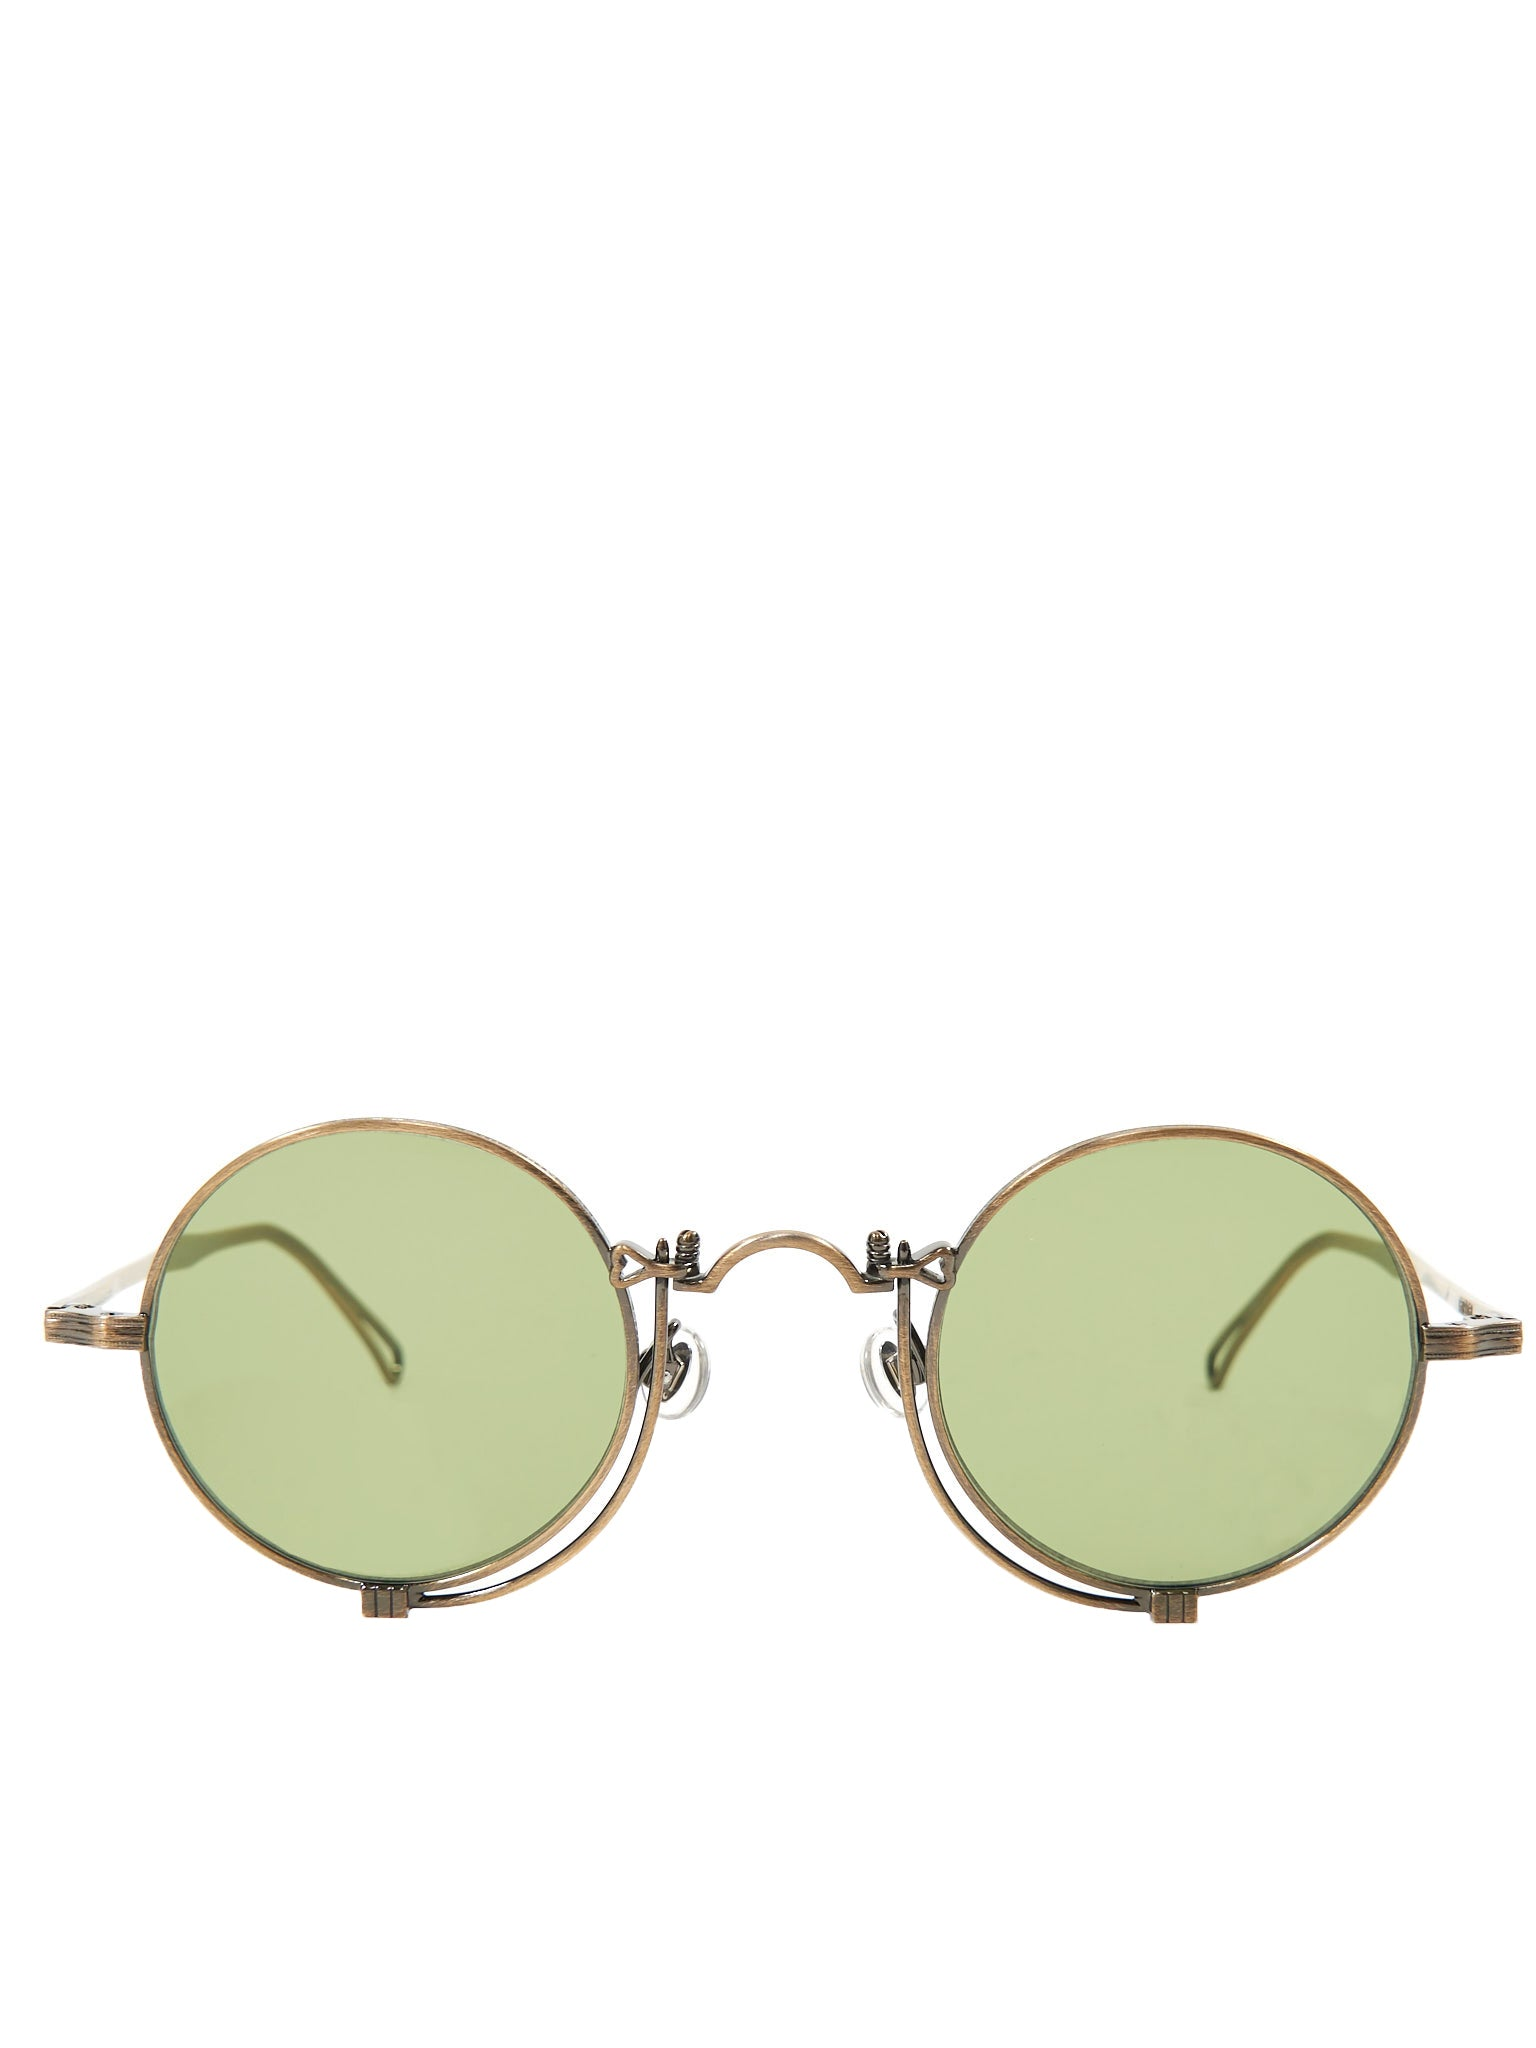 10601H Sunglasses (10601H-ANTIQUE-GOLD-SAGE-GREEN)